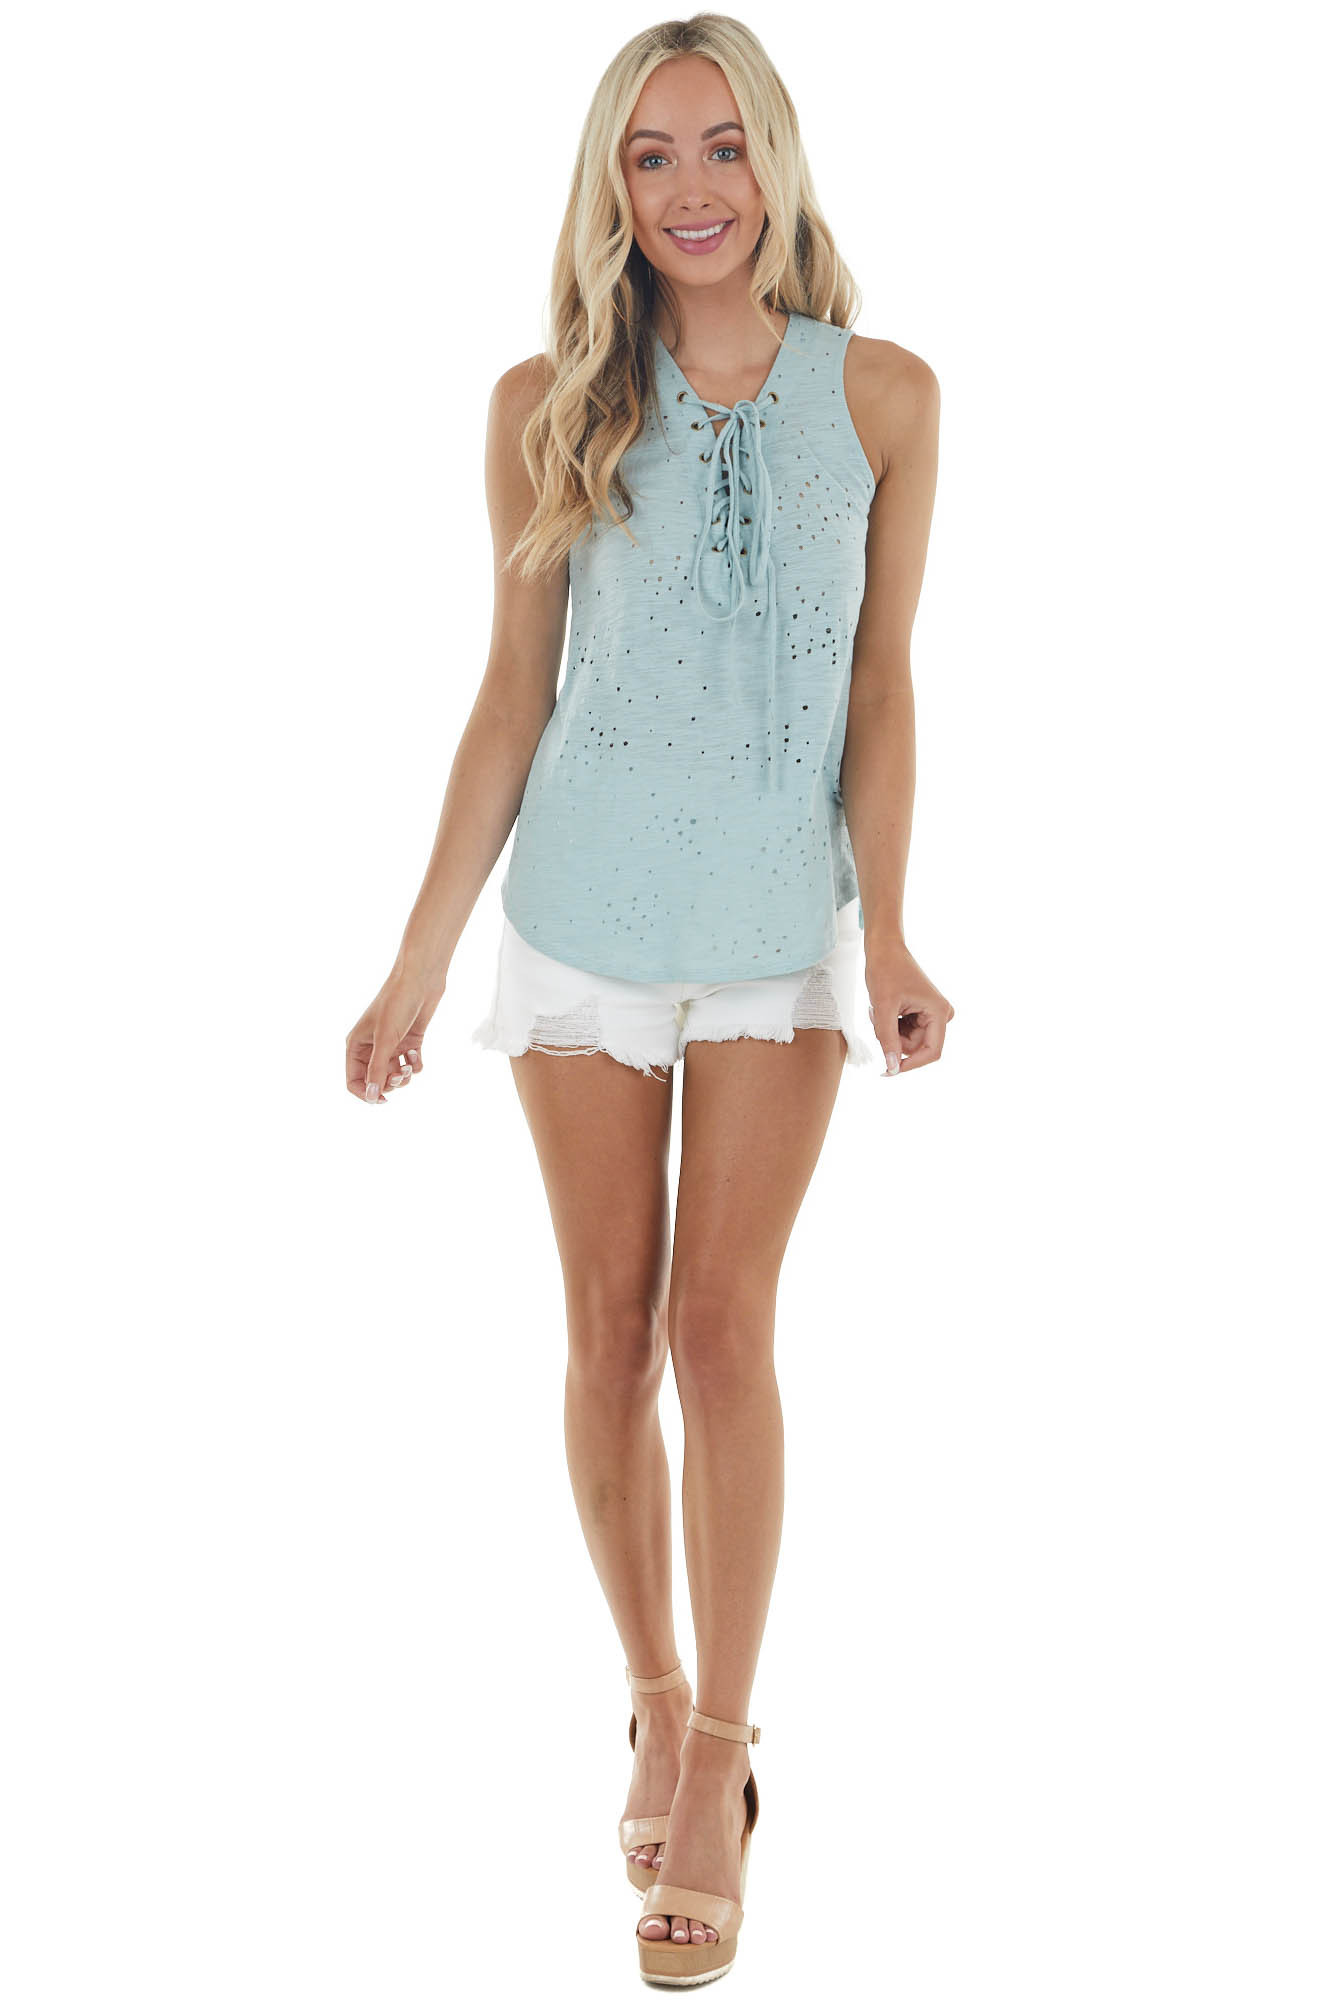 Seafoam Sleeveless Top with Front Tie and Distressed Holes